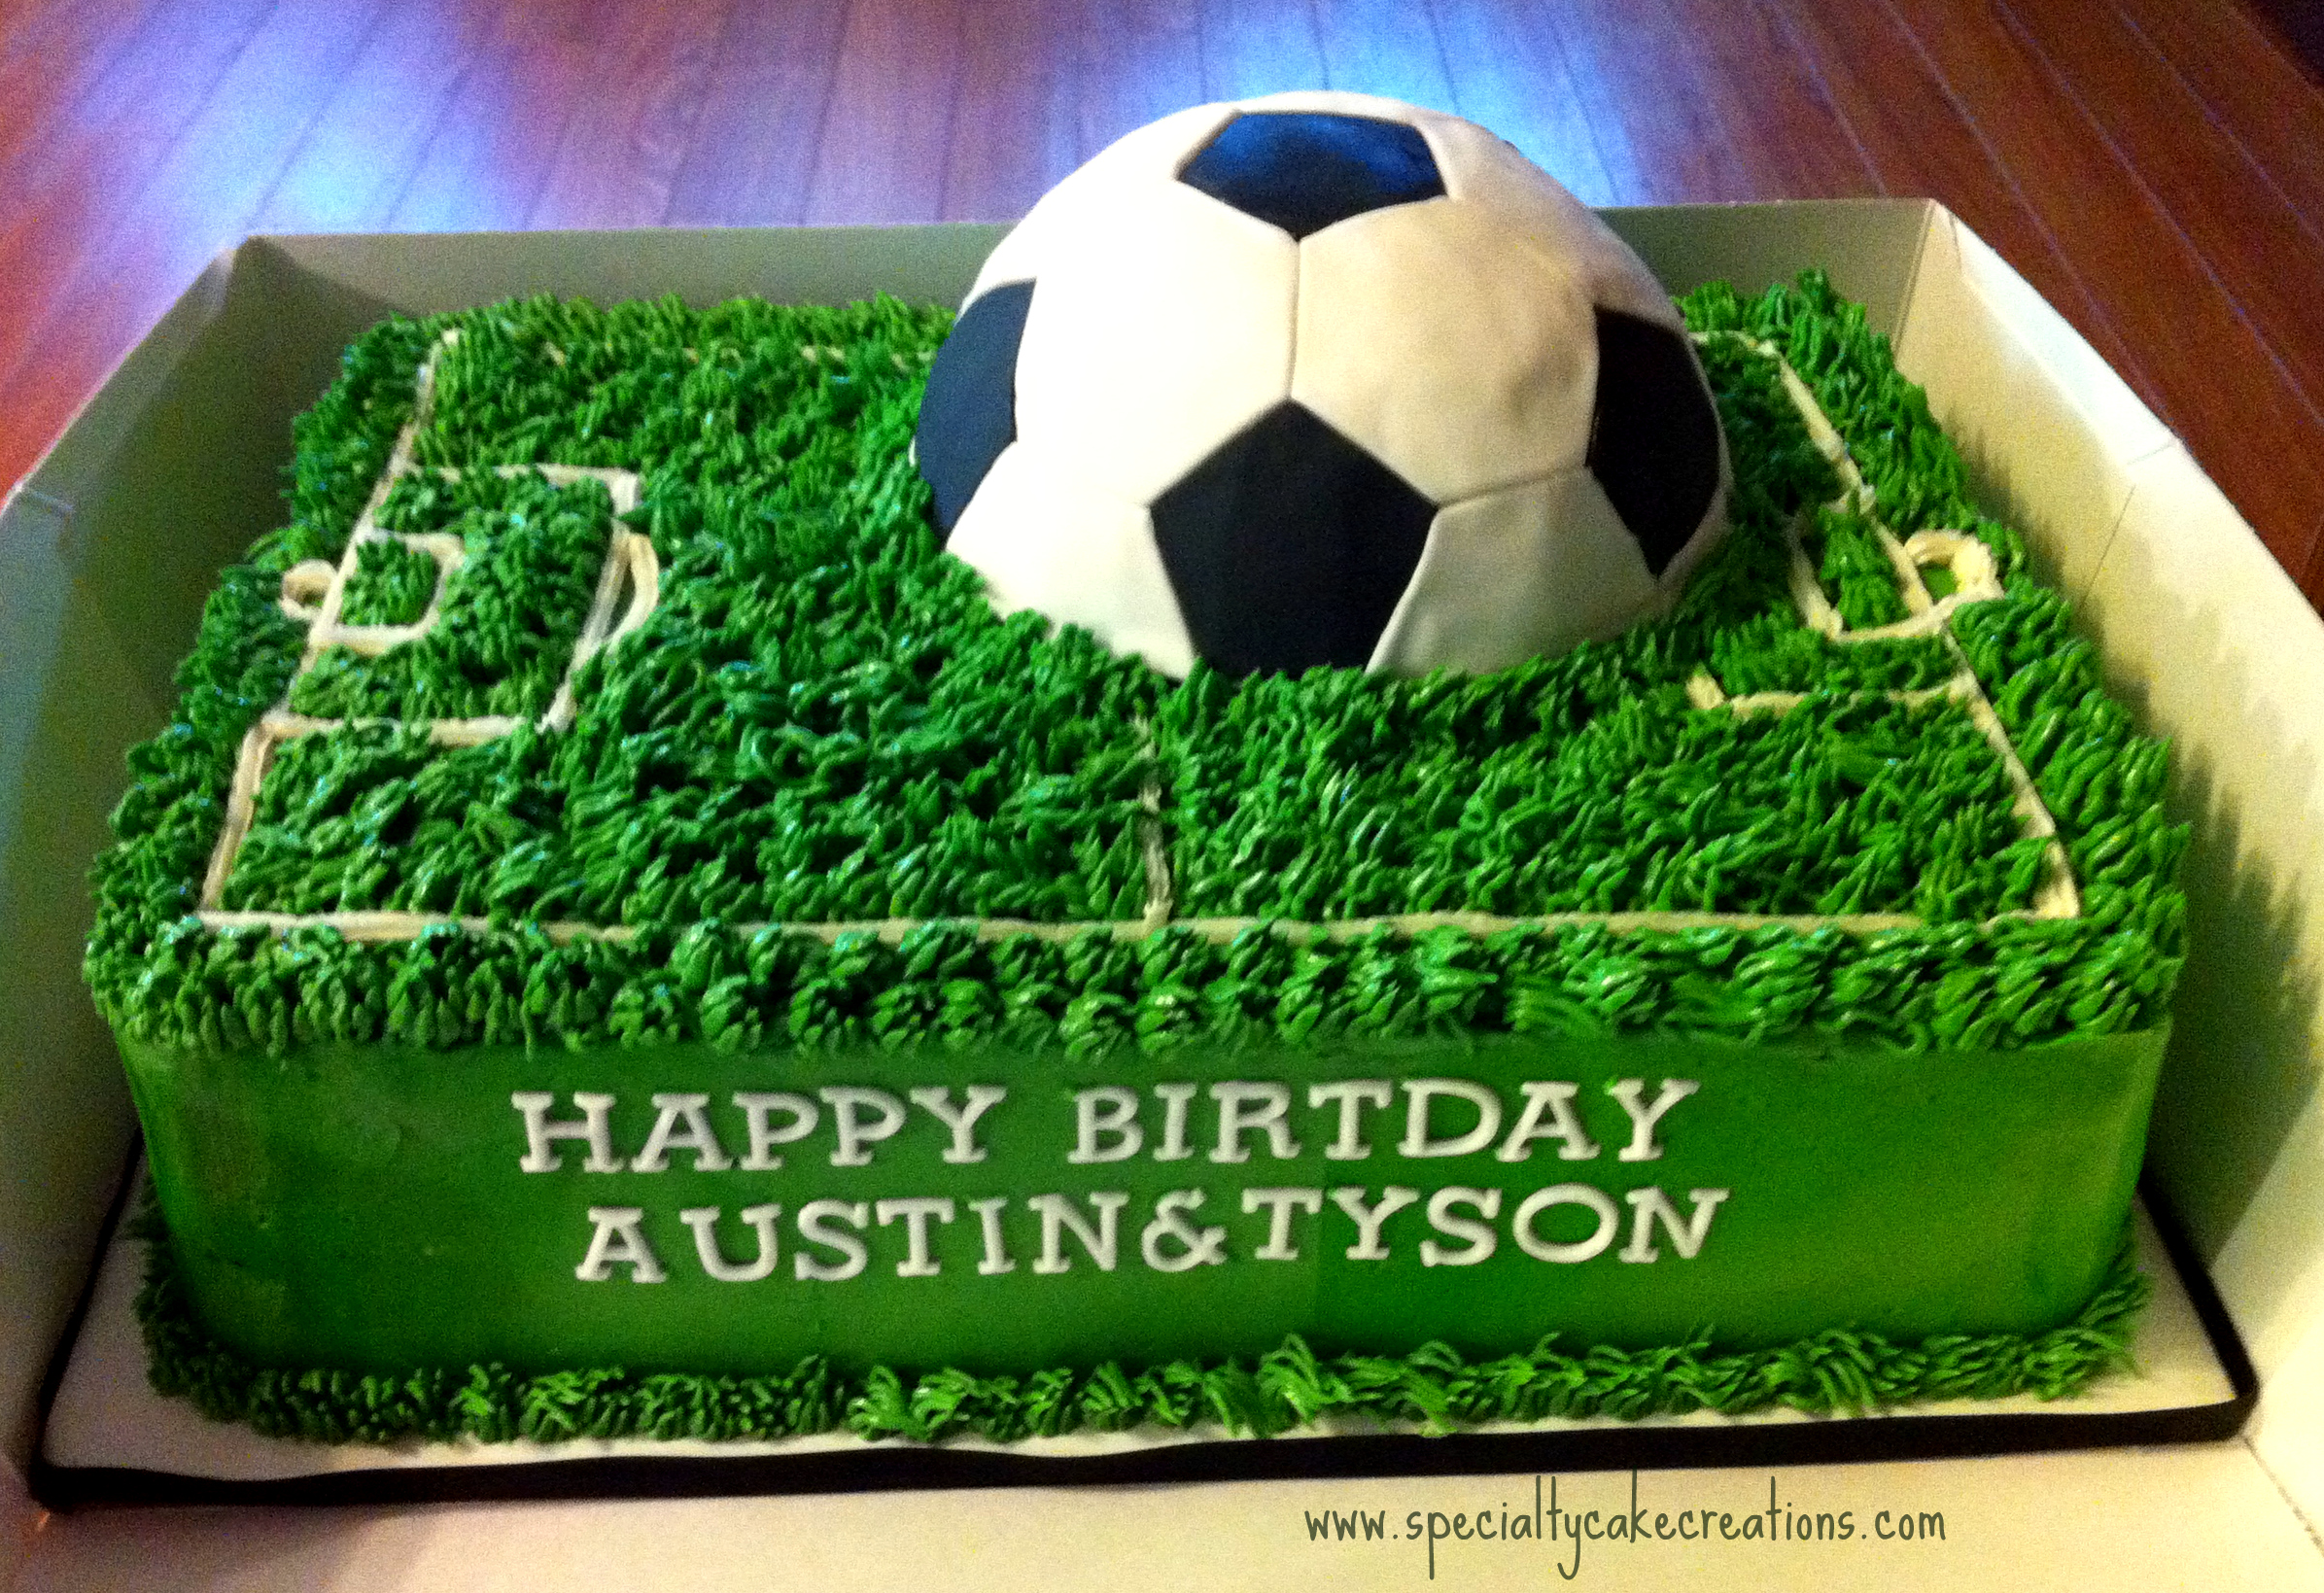 https://i1.wp.com/specialtycakecreations.com/wp-content/uploads/2011/08/Soccer-Field-Cake.jpg